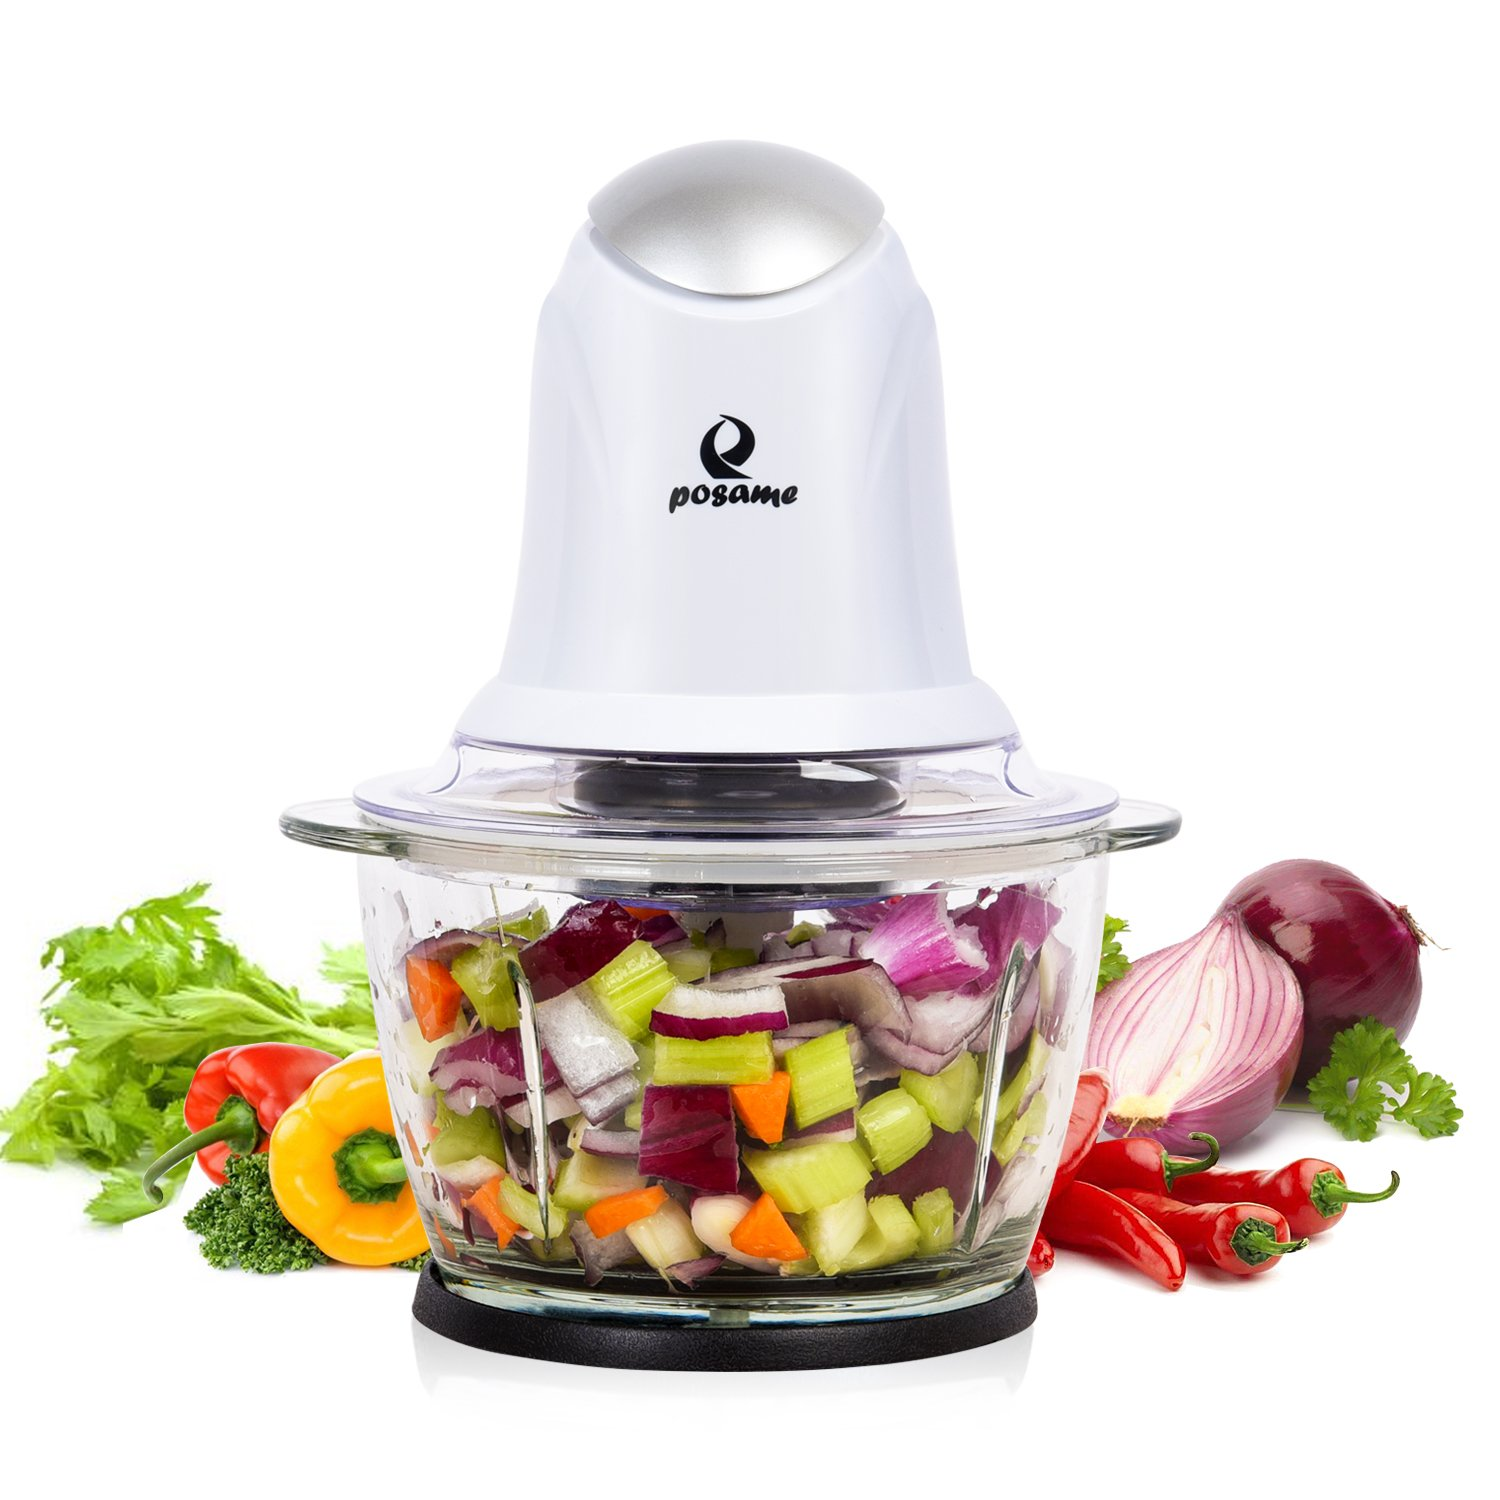 POSAME Mini Food Processor Meat Grinders Electric,Small Kitchen Food Chopper Vegetable Fruit Cutter Onion Slicer Dicer, Blender and Mincer, with 4-Cup Glass Bowl-White